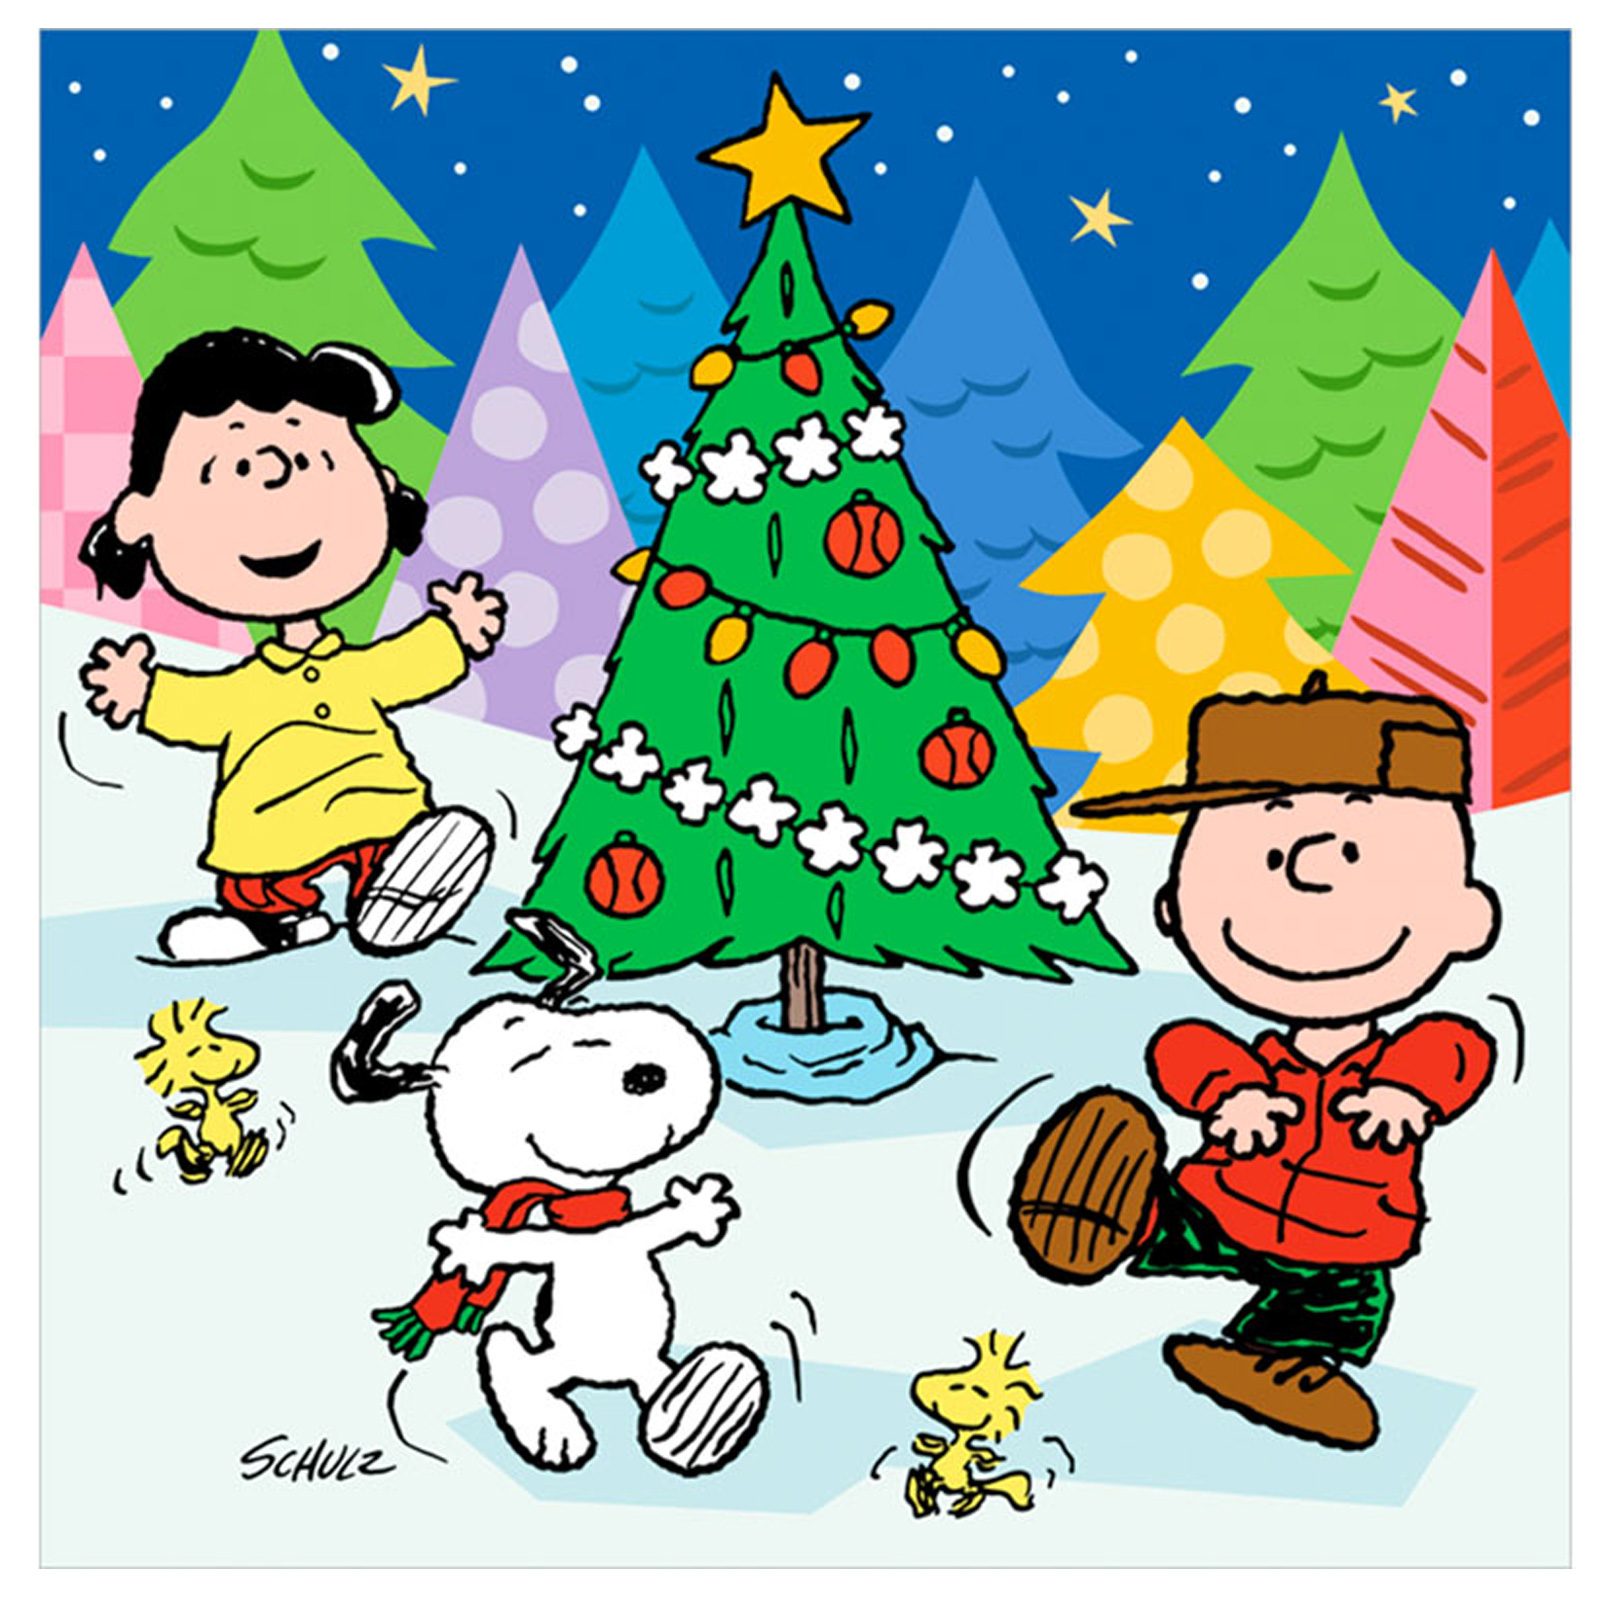 Charlie Brown Peanuts Comics Snoopy Christmas F Wallpaper   1600x1600